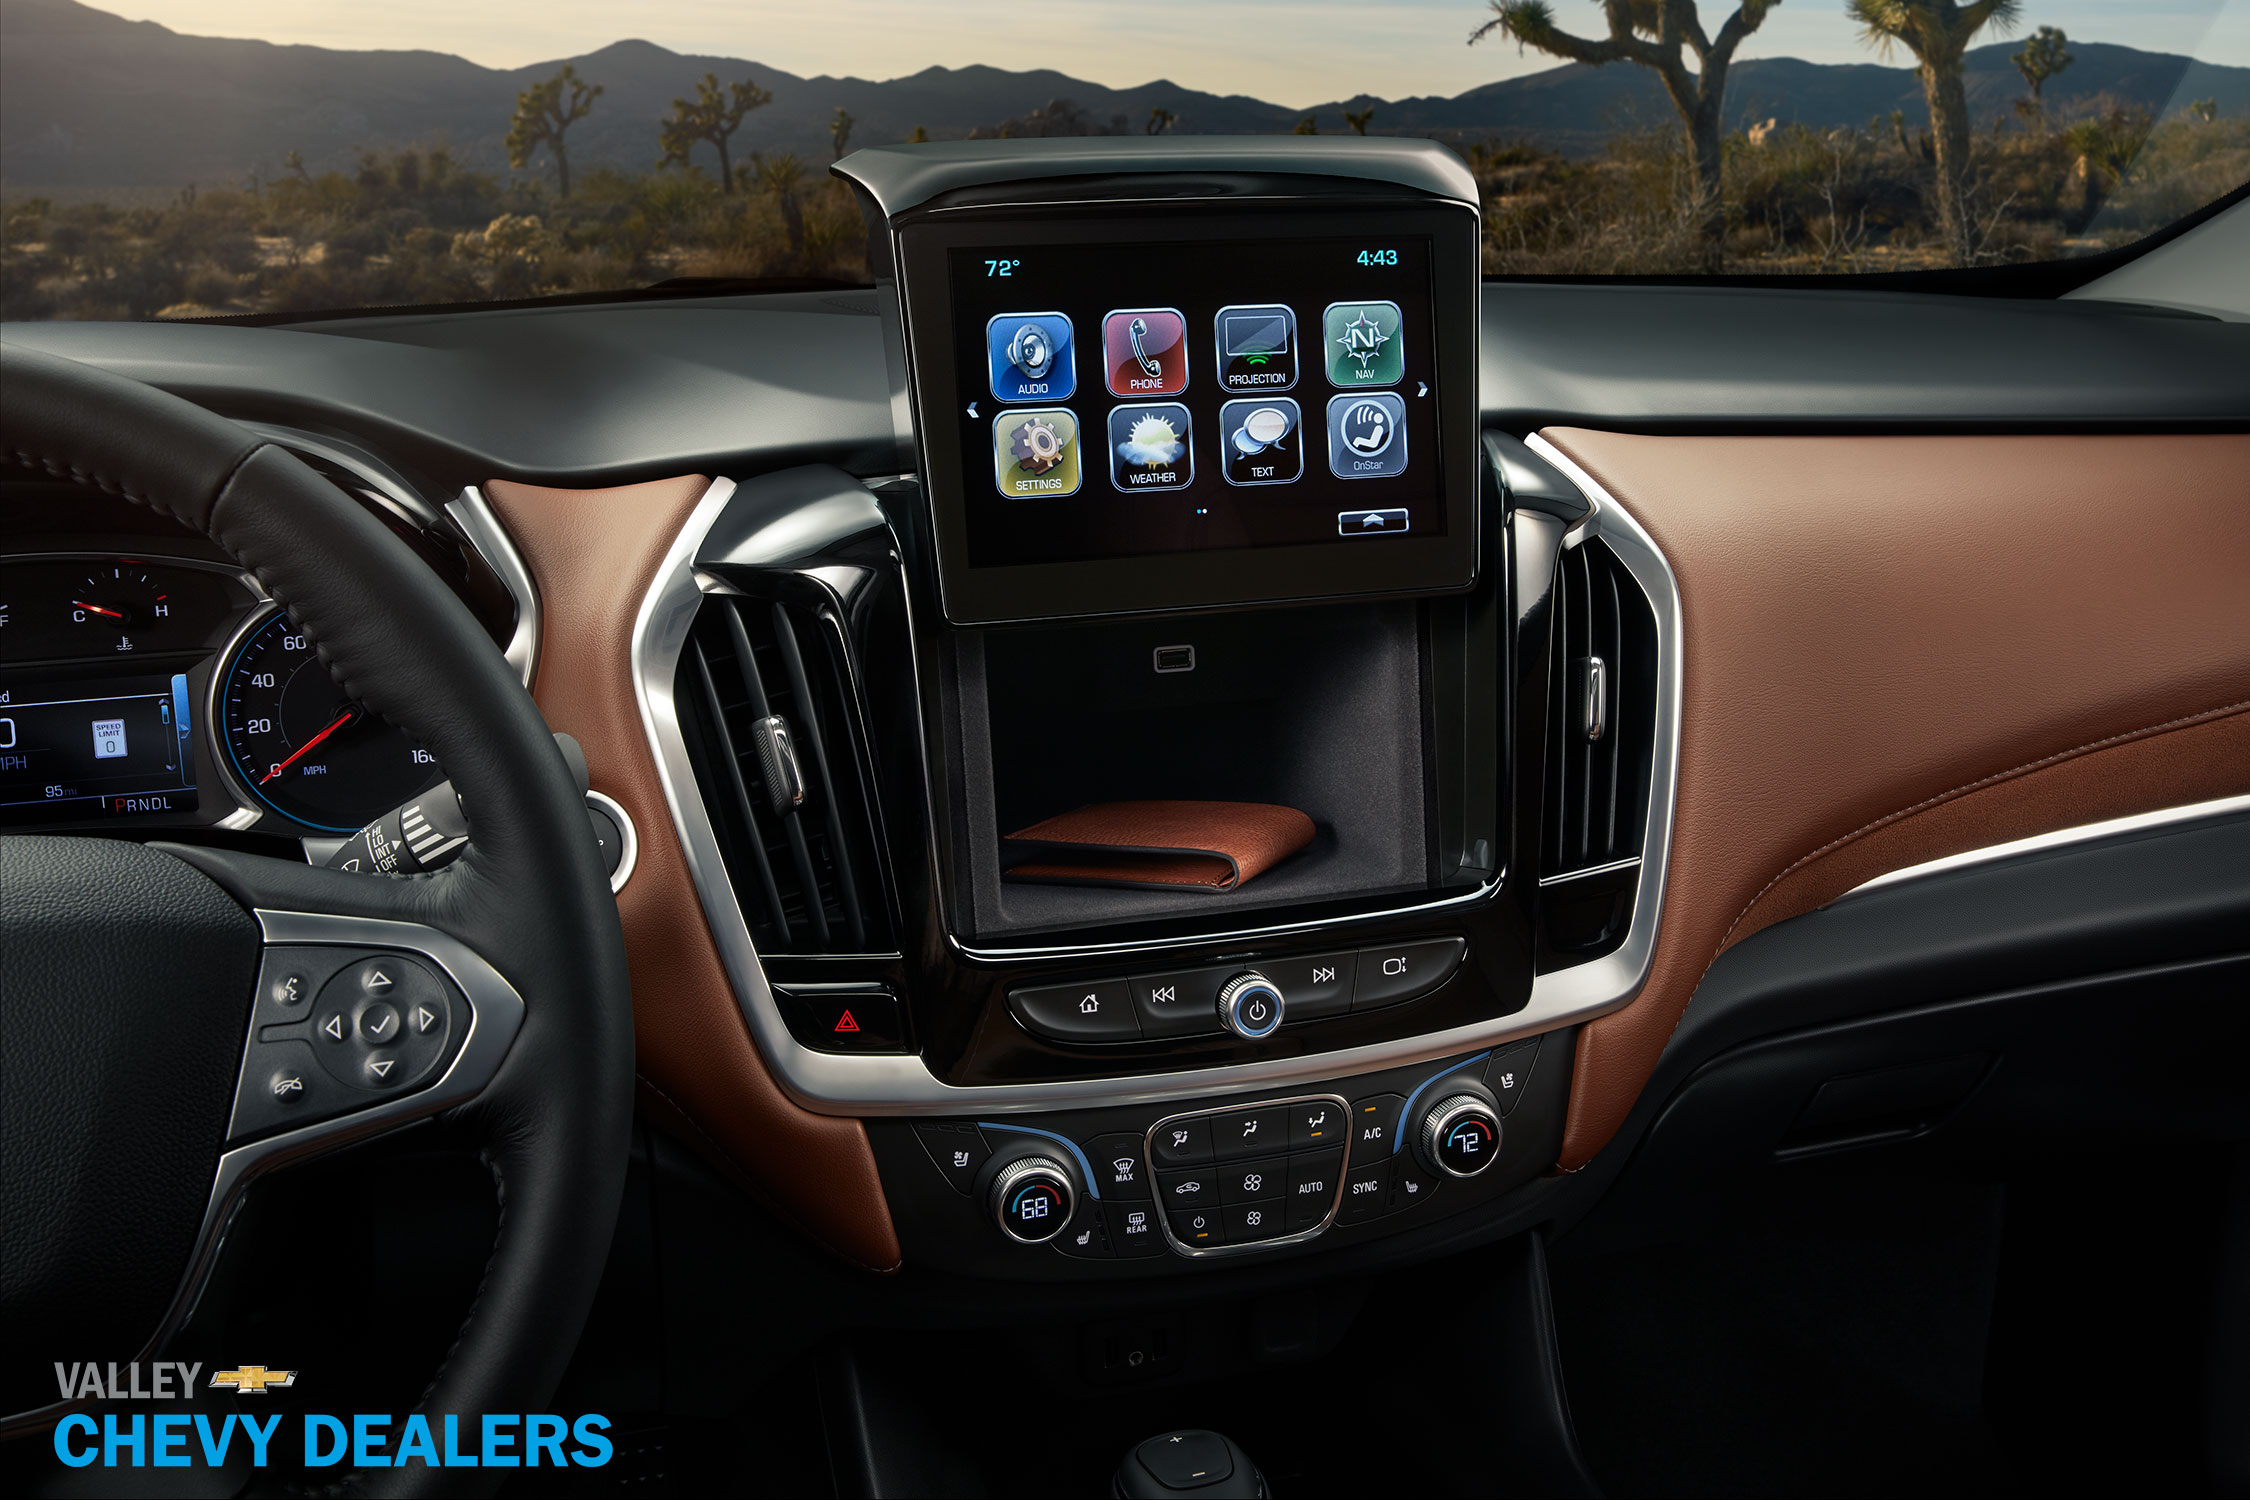 Valley Chevy - 2017 Chevrolet Traverse: Wallet Storage Compartment